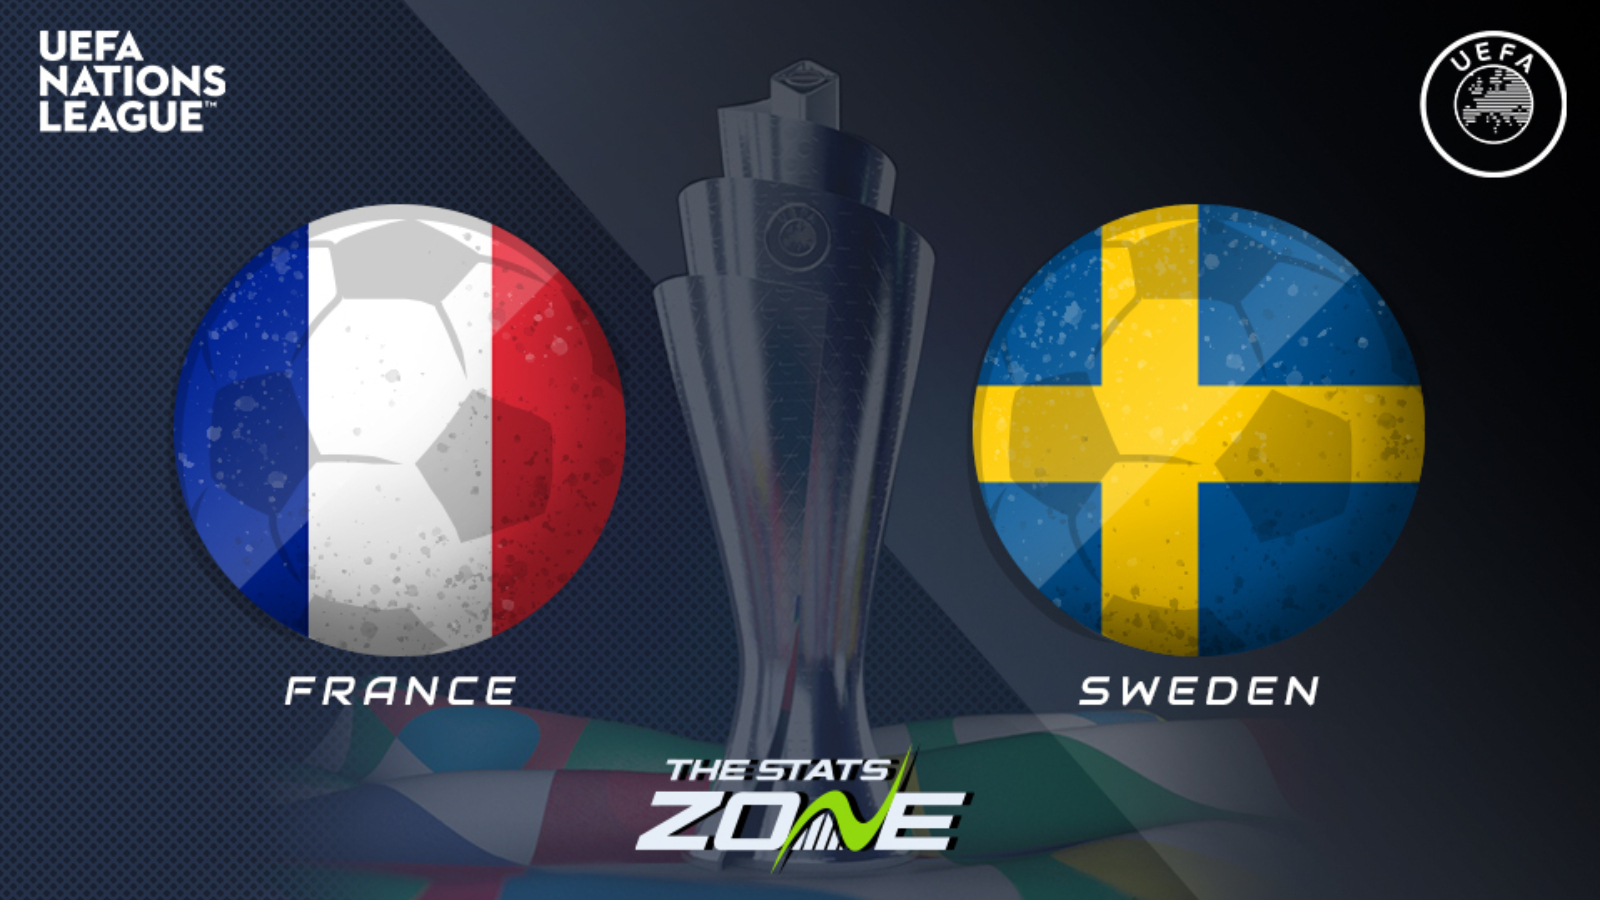 Sweden vs france betting tips are binary options halal